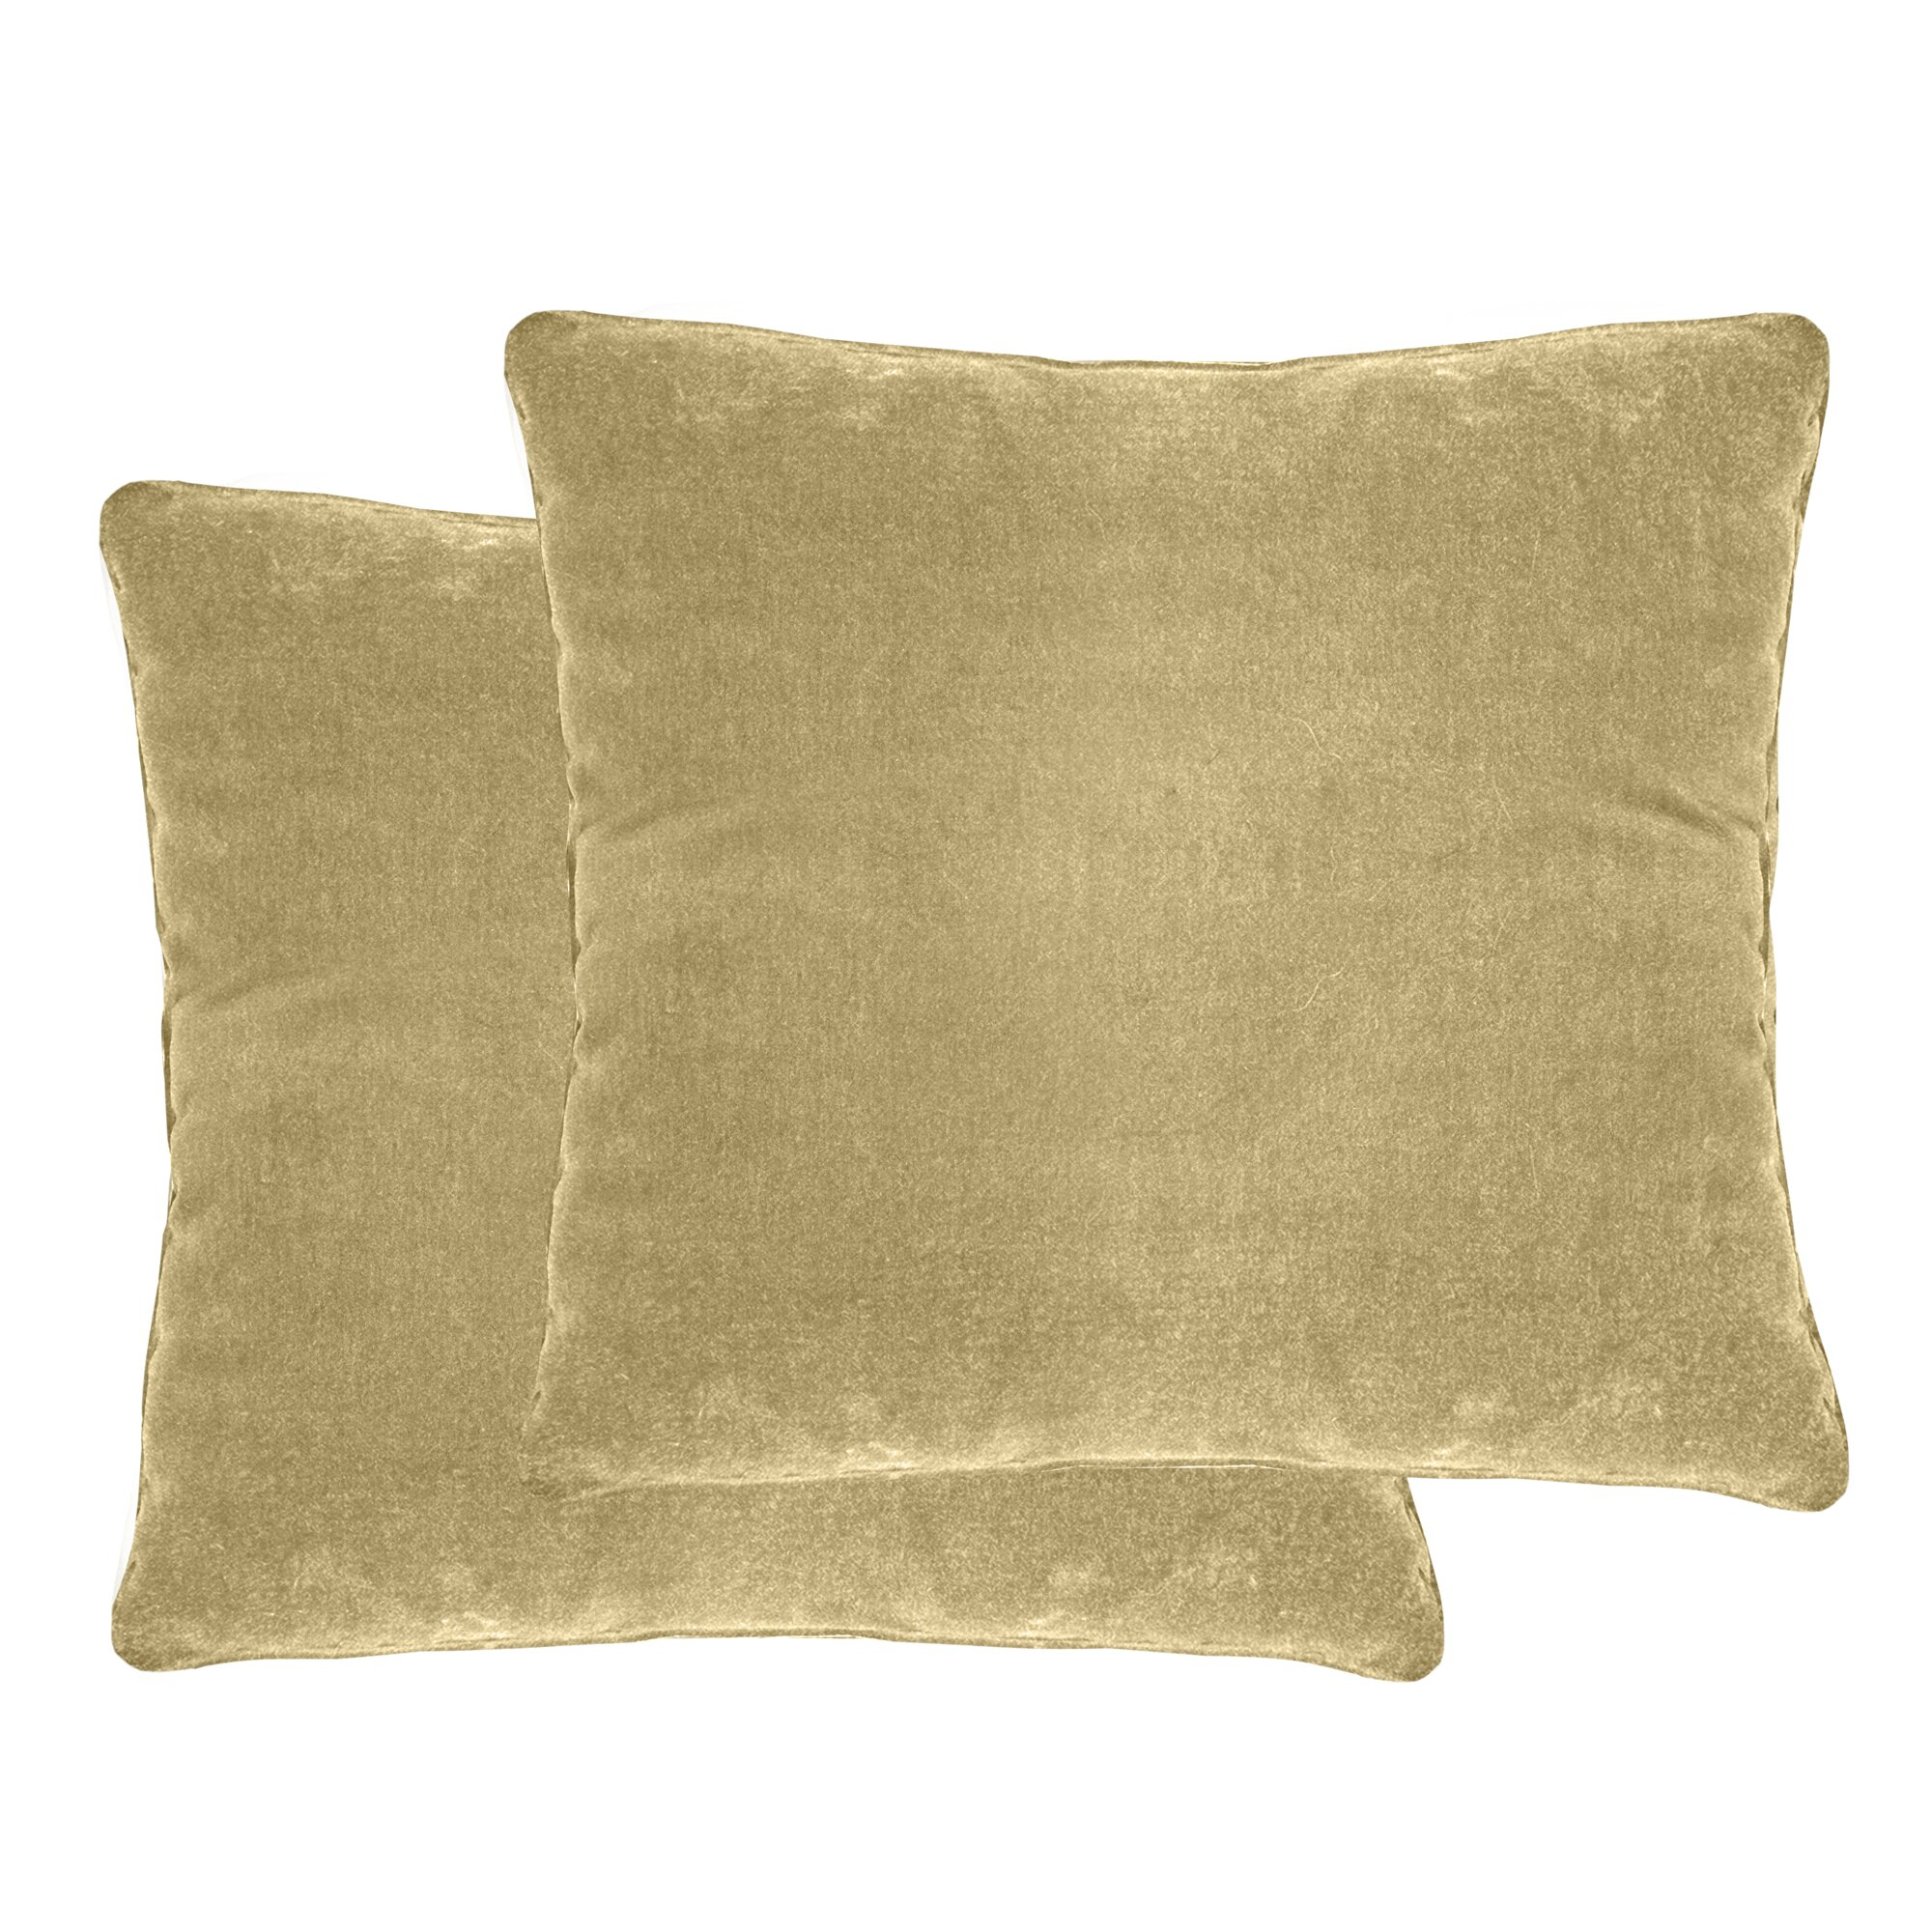 Veratex Luxury Velvet Throw Pillow & Reviews Wayfair